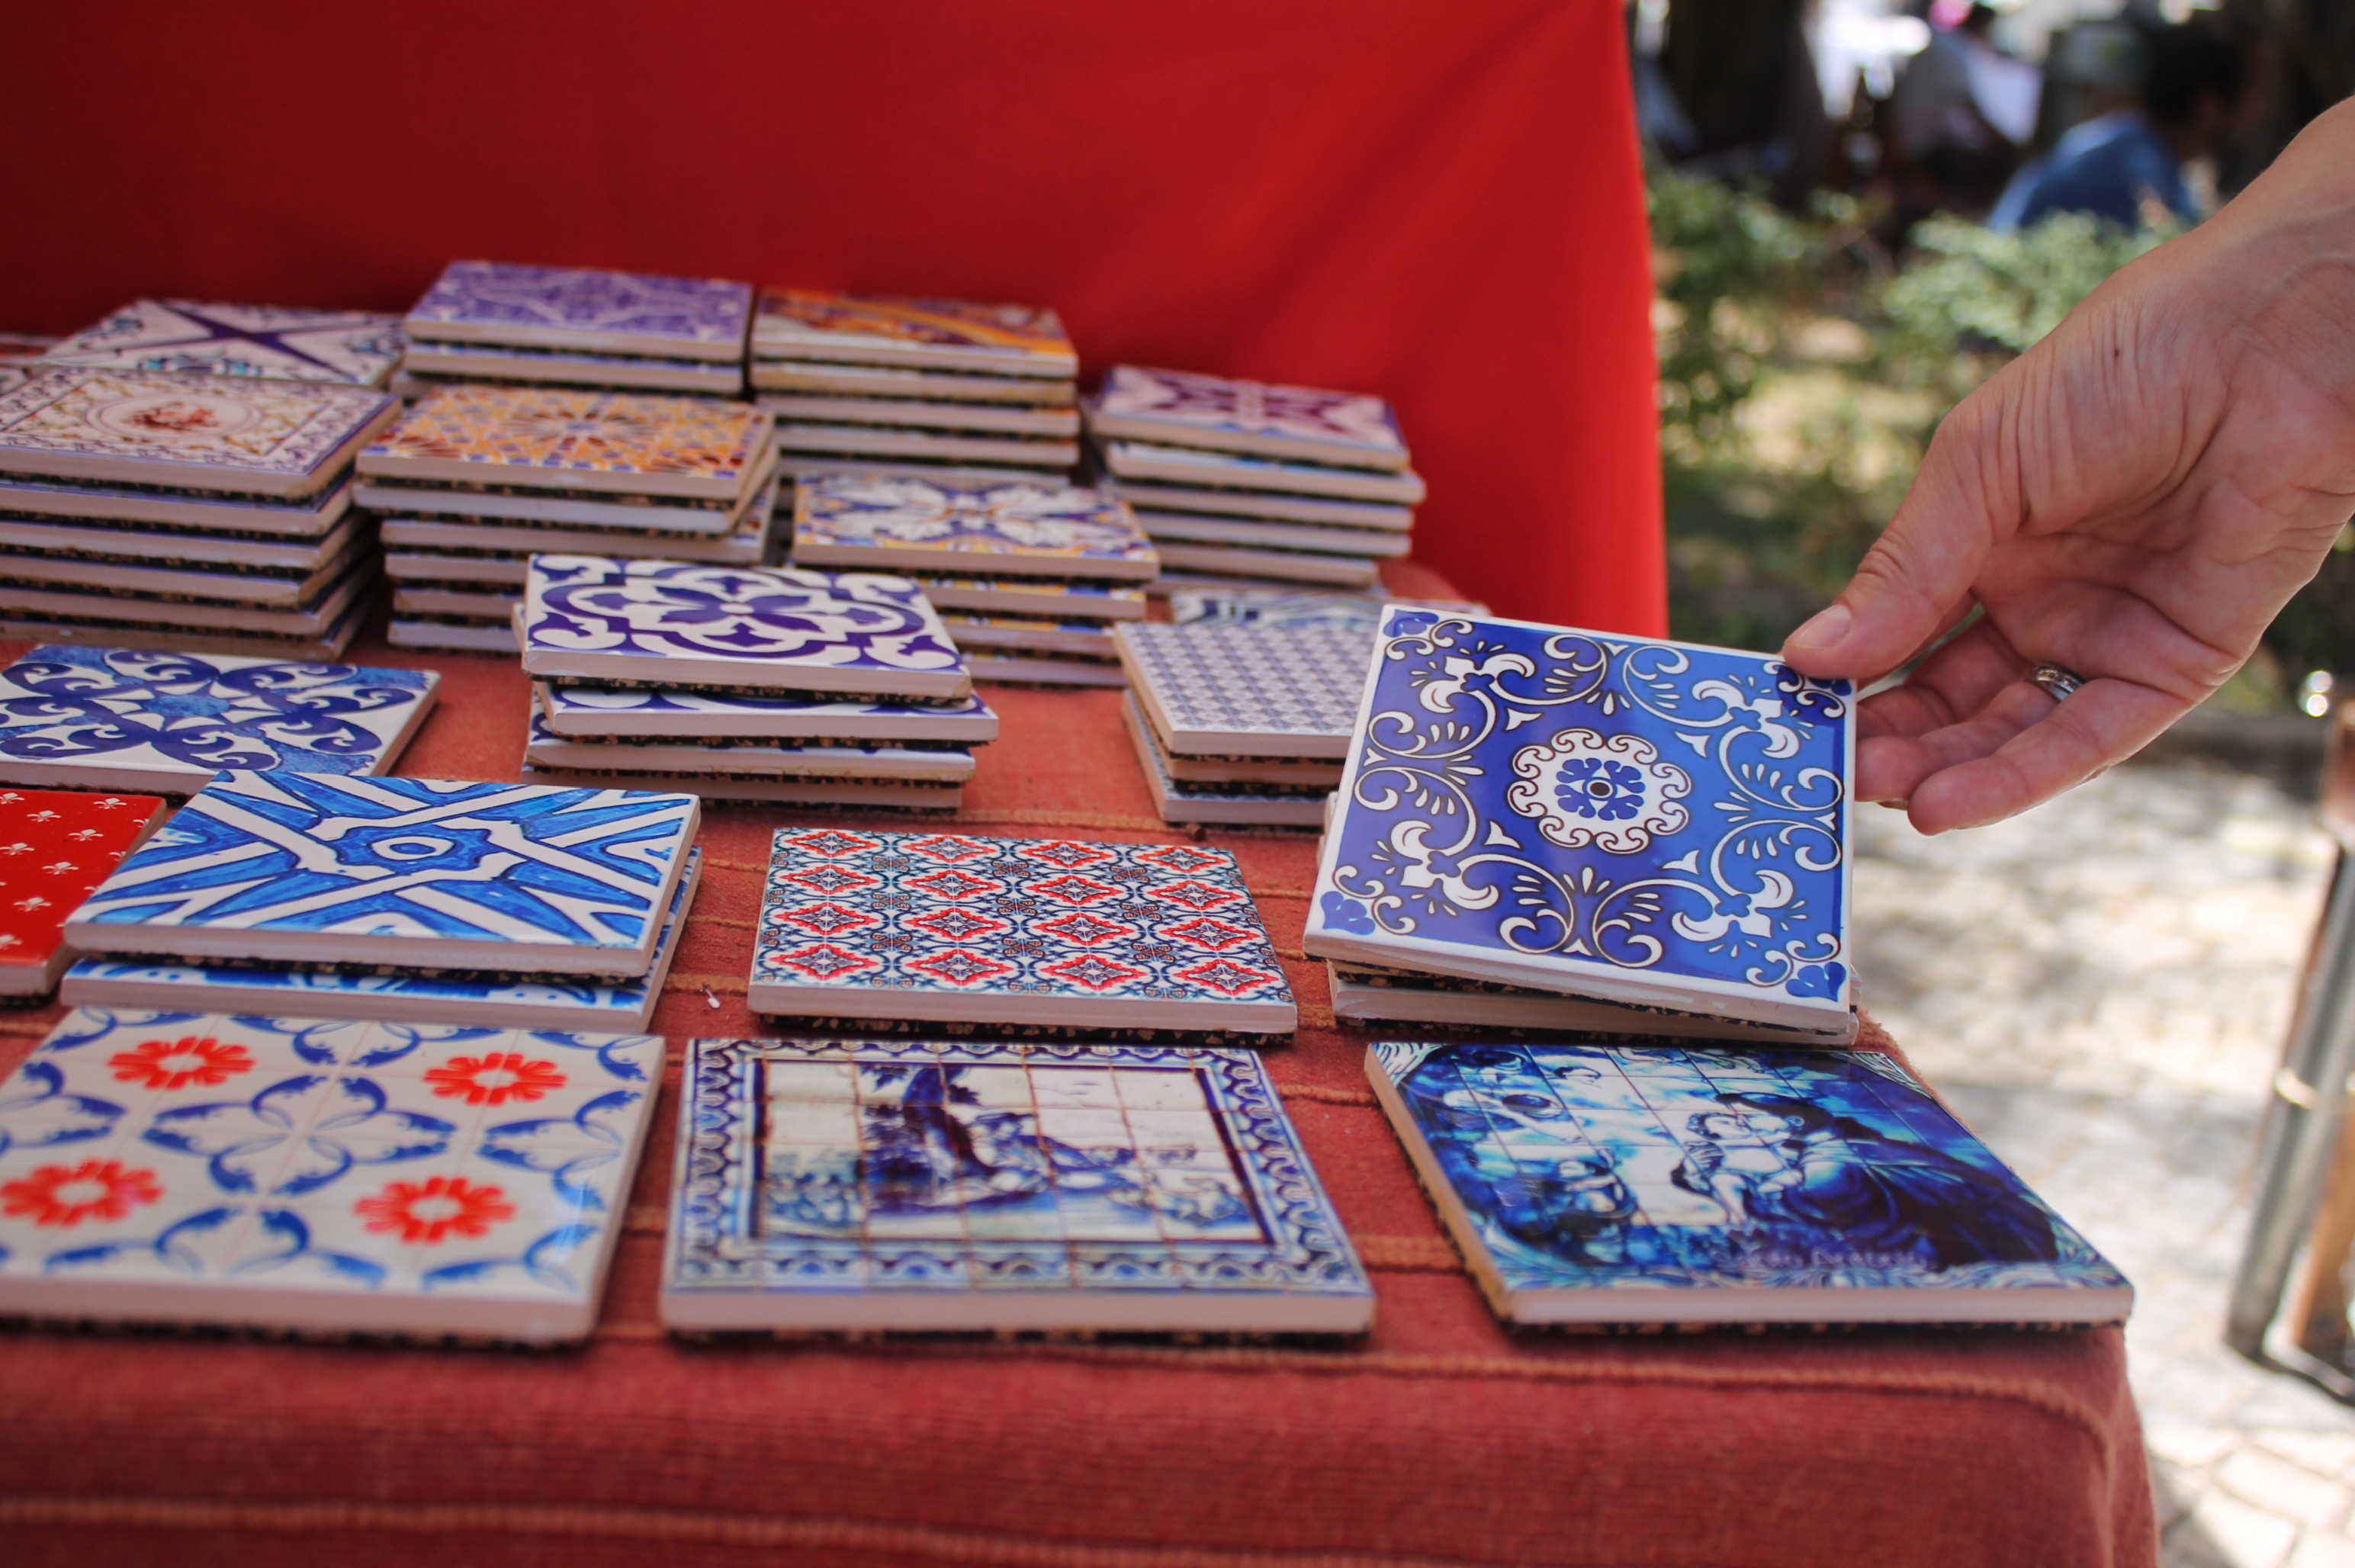 Portugal on Azulejo tiles - workshop for women